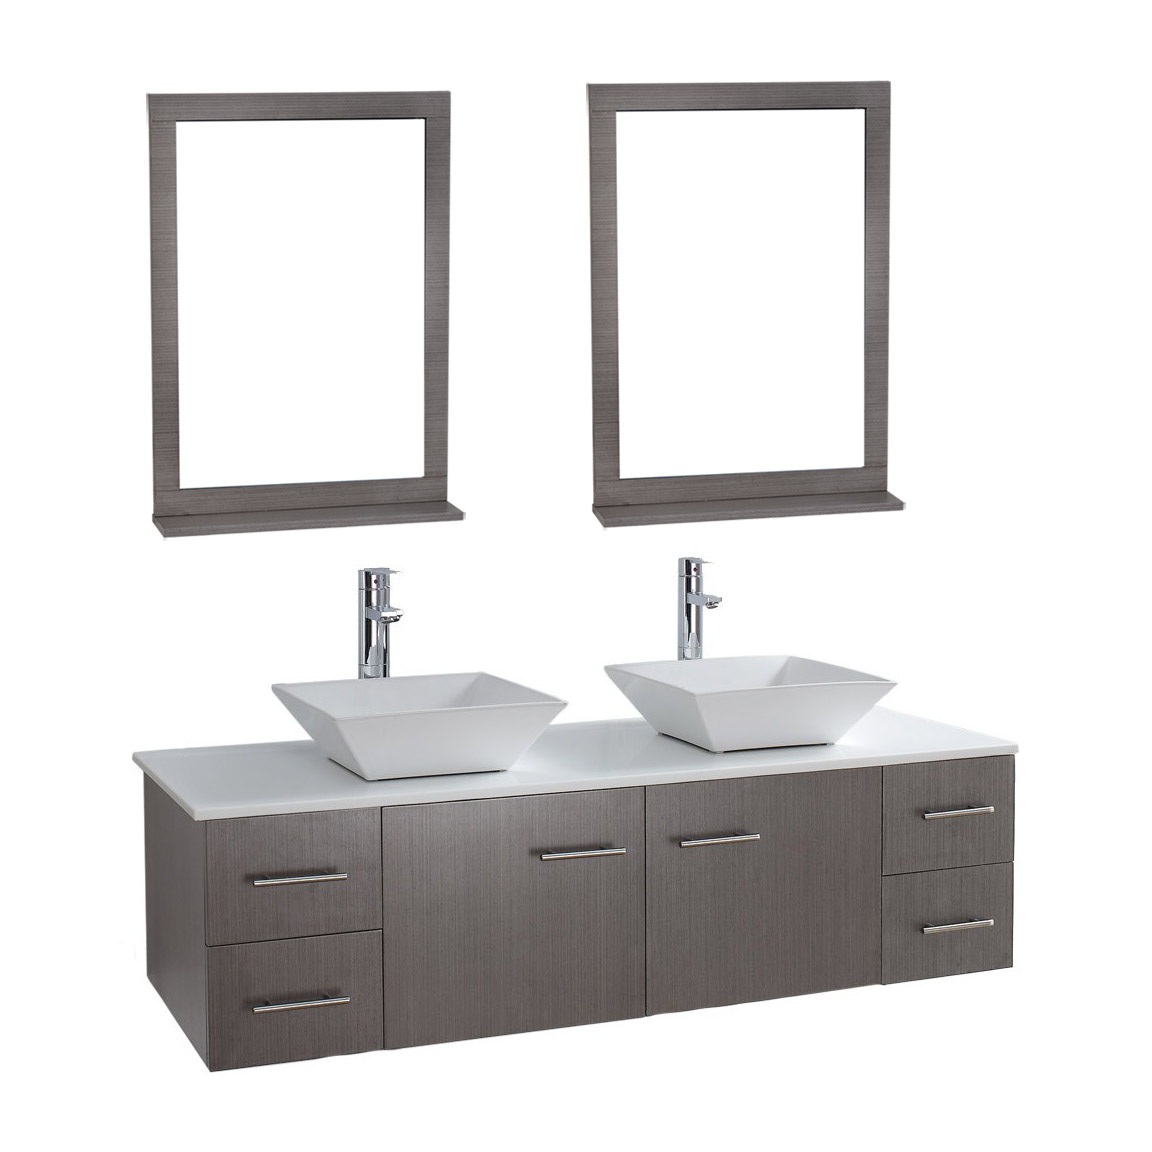 home incredible bathroom less decor inches amusing vanity double vanities vibrant decoration ideas remarkable for over cabinets charming sink inch